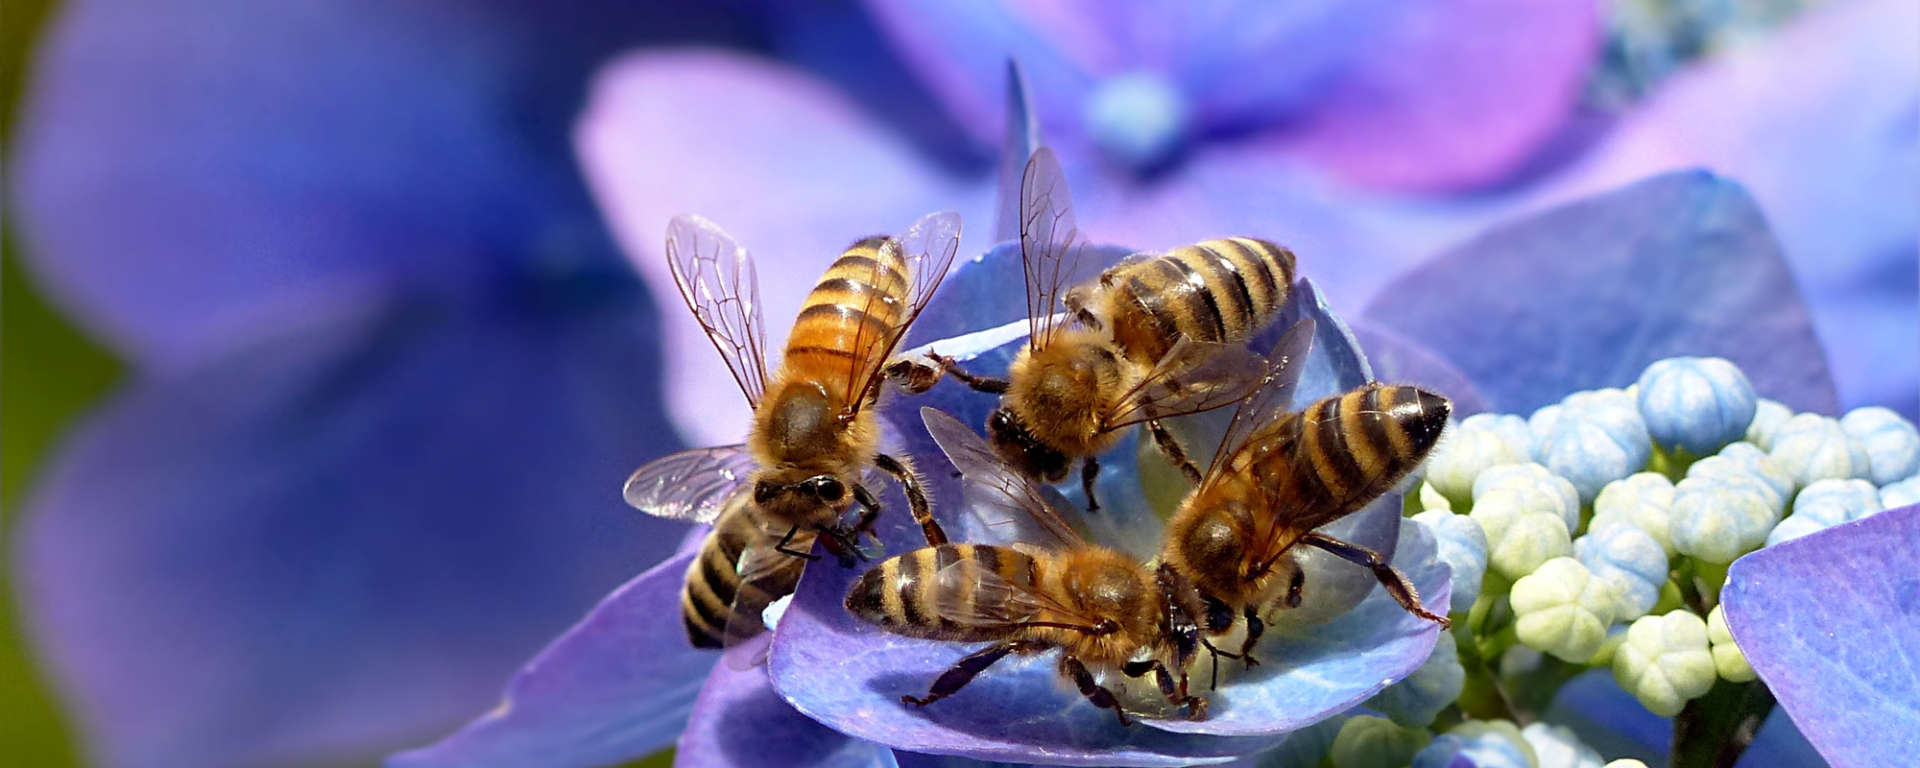 Honey Bees and Flower